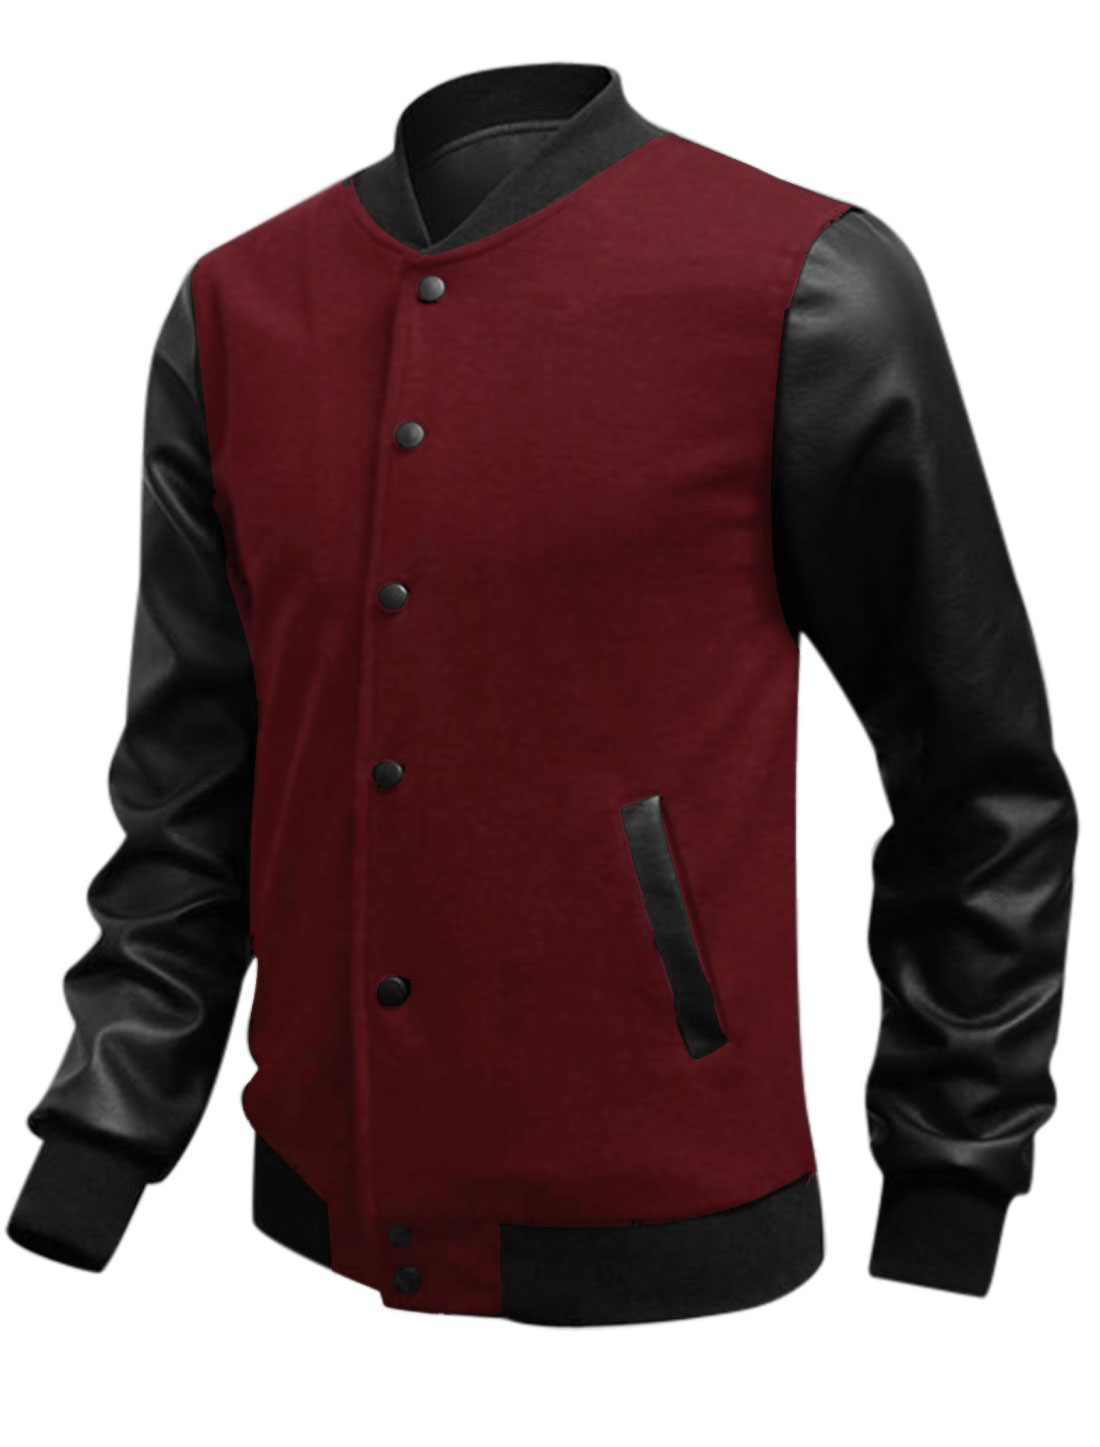 Single Breasted Rib Knit Collar Snap Button Burgundy M Jacket for Man